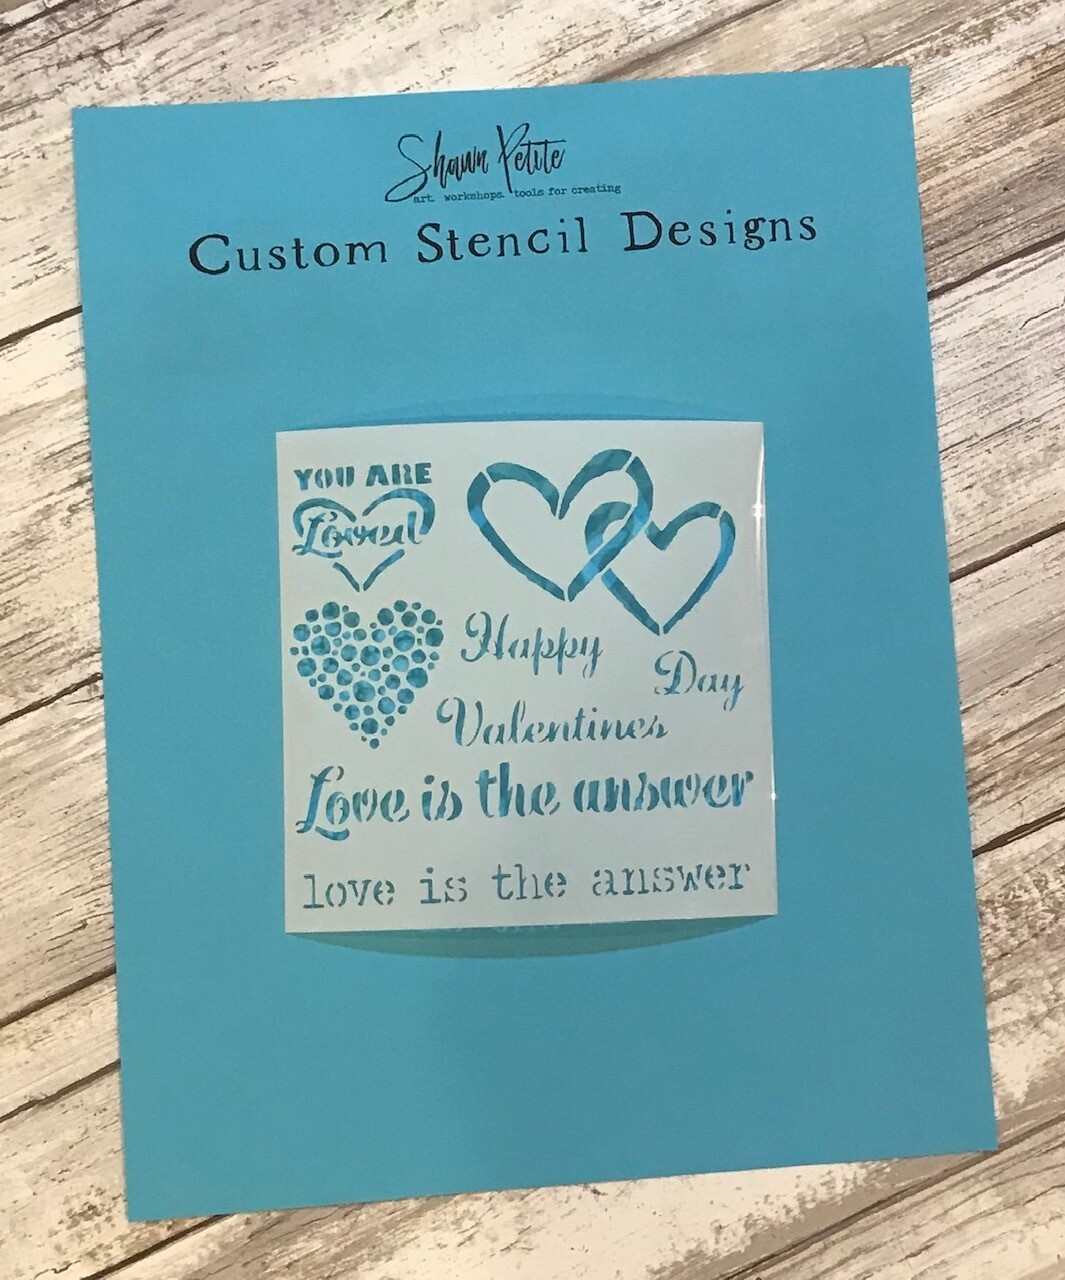 Valentines Love Is The Answer clearance stencil